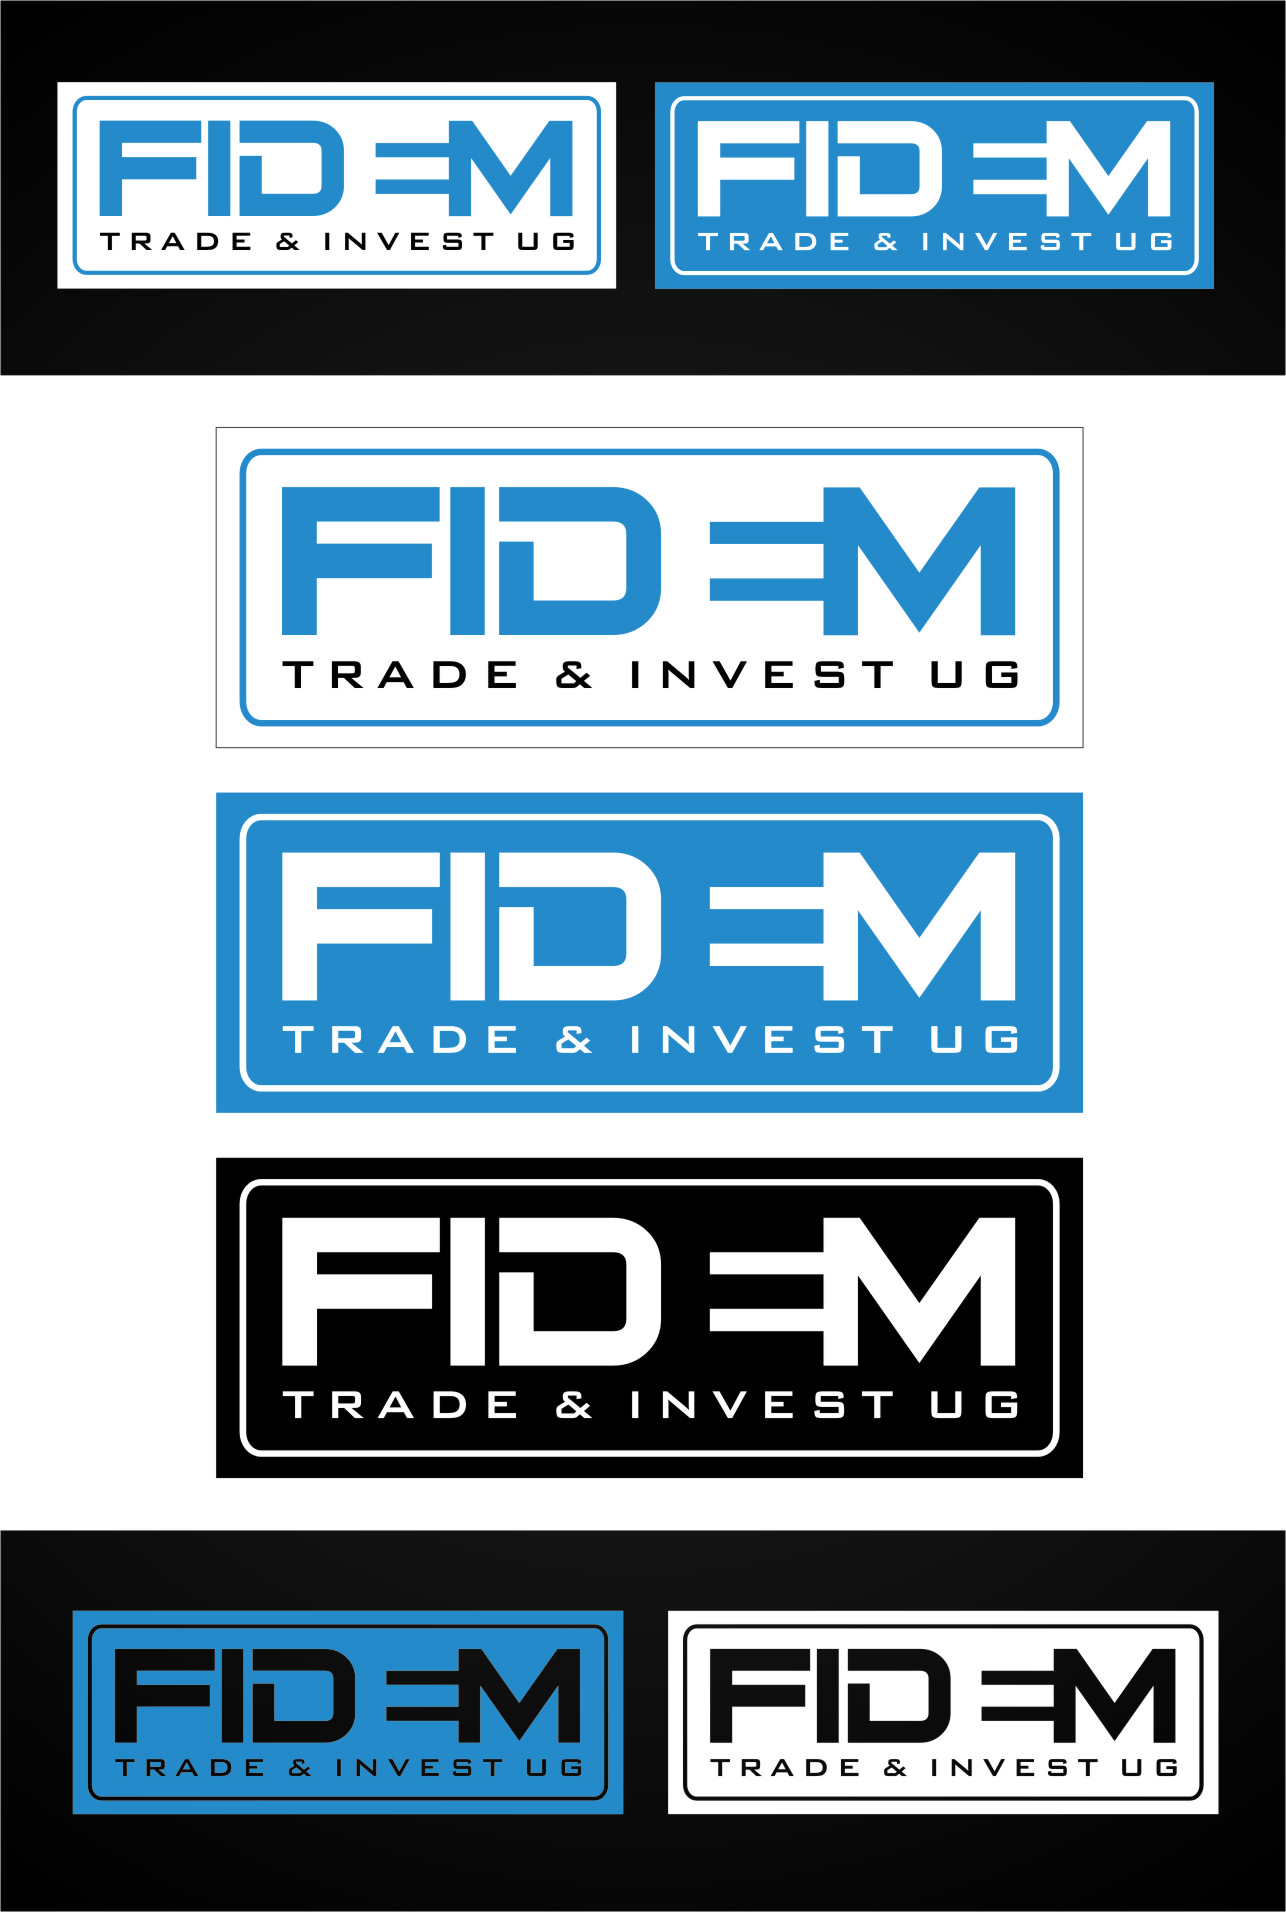 Logo Design by RasYa Muhammad Athaya - Entry No. 437 in the Logo Design Contest Professional Logo Design for FIDEM Trade & Invest UG.